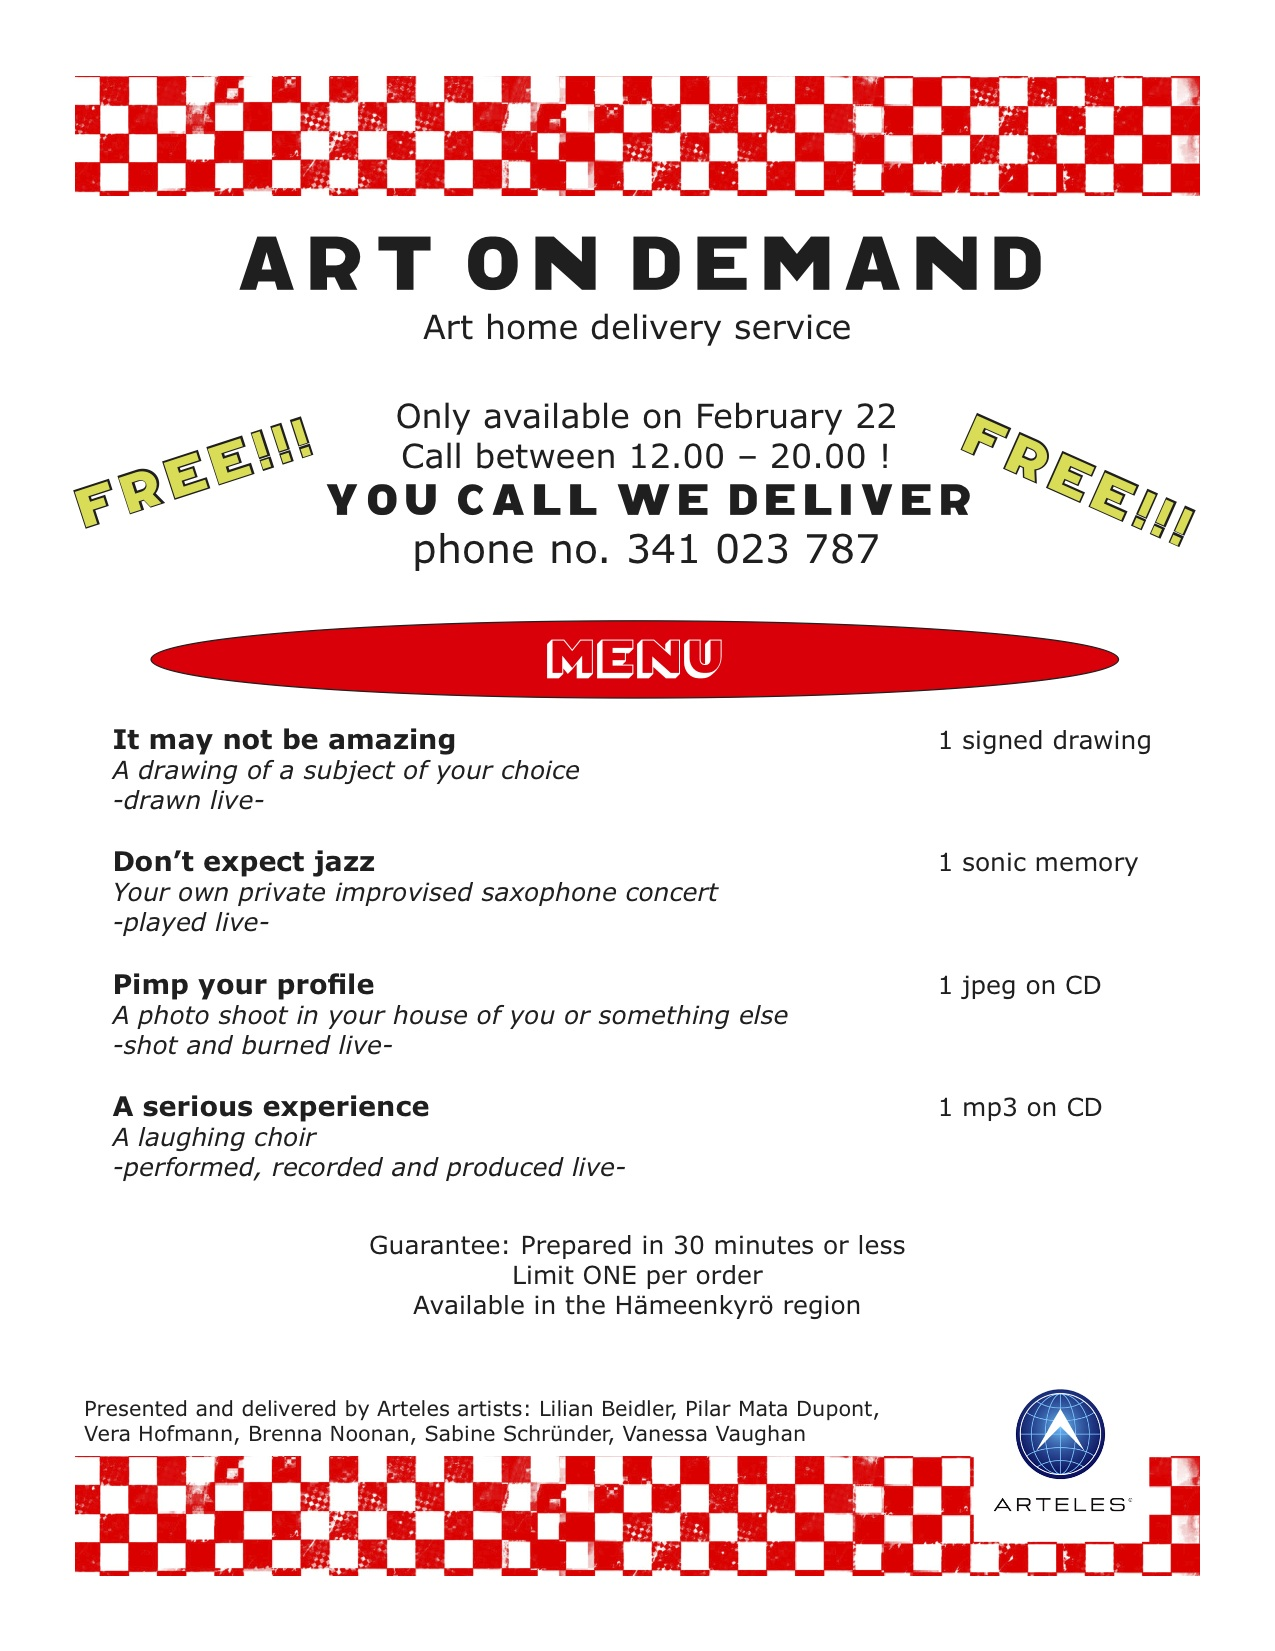 art on demand Menu